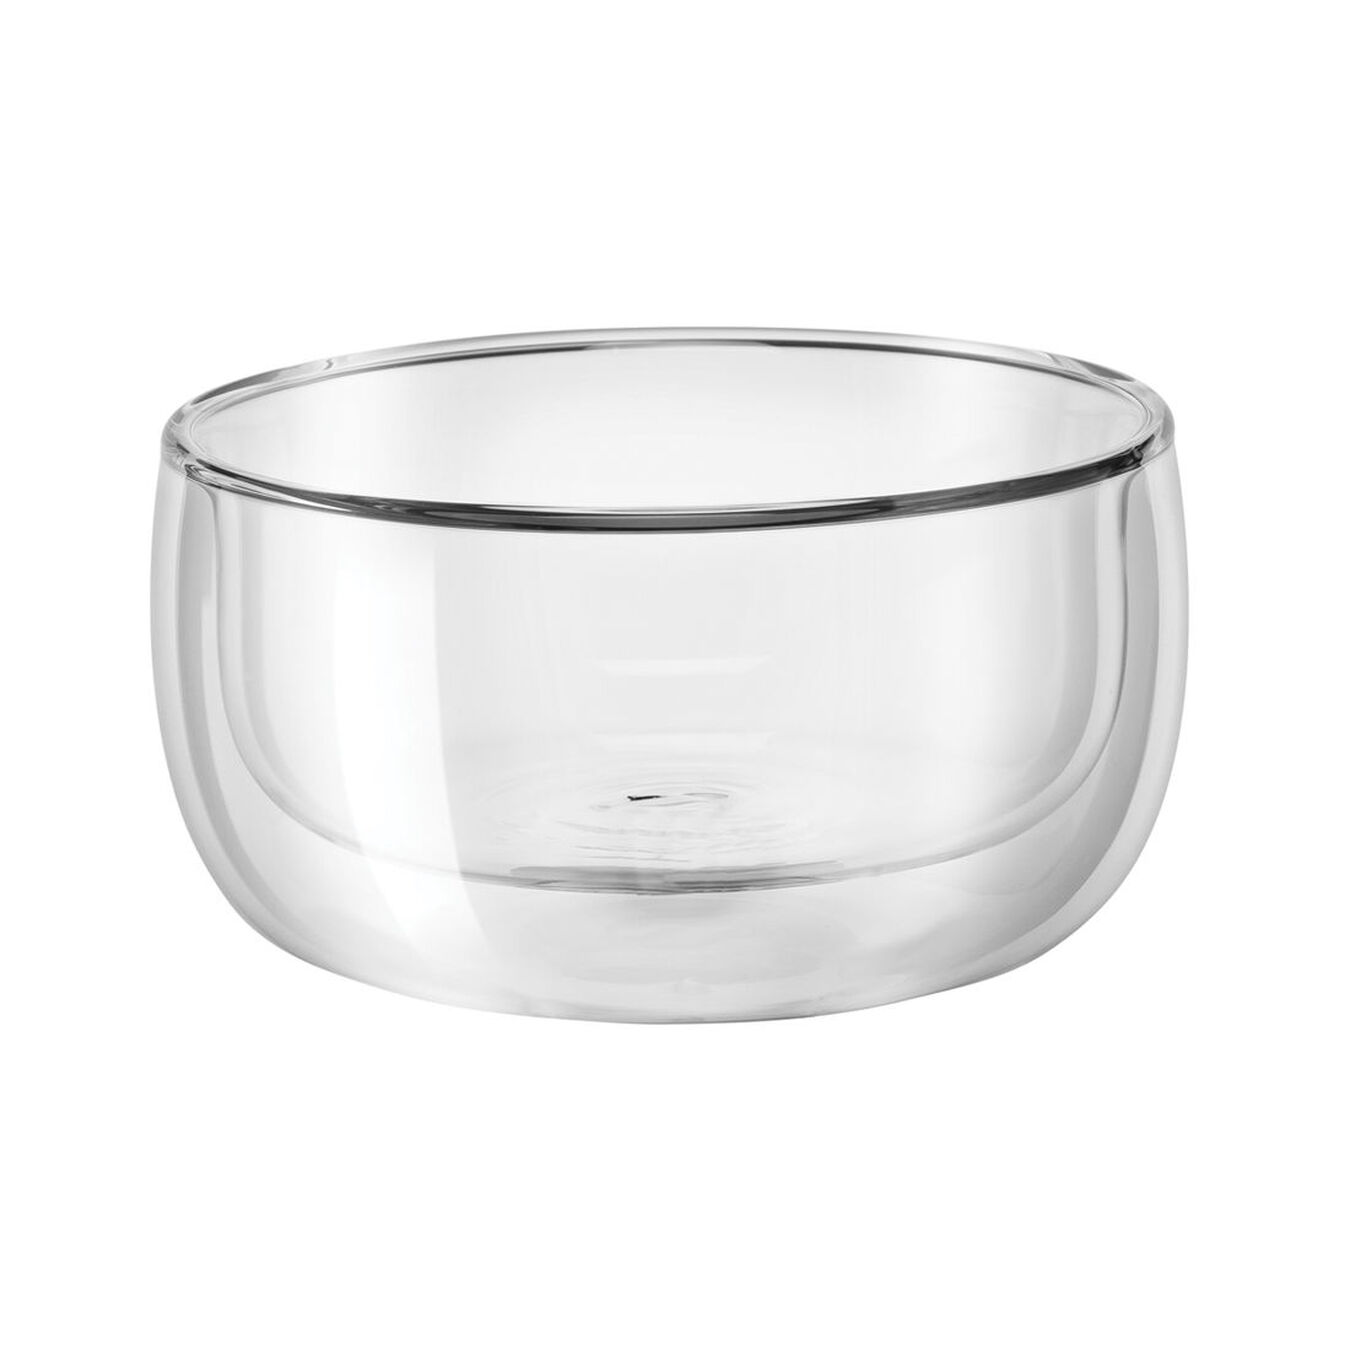 2-pc Double-Wall Glass Bowl Set,,large 2